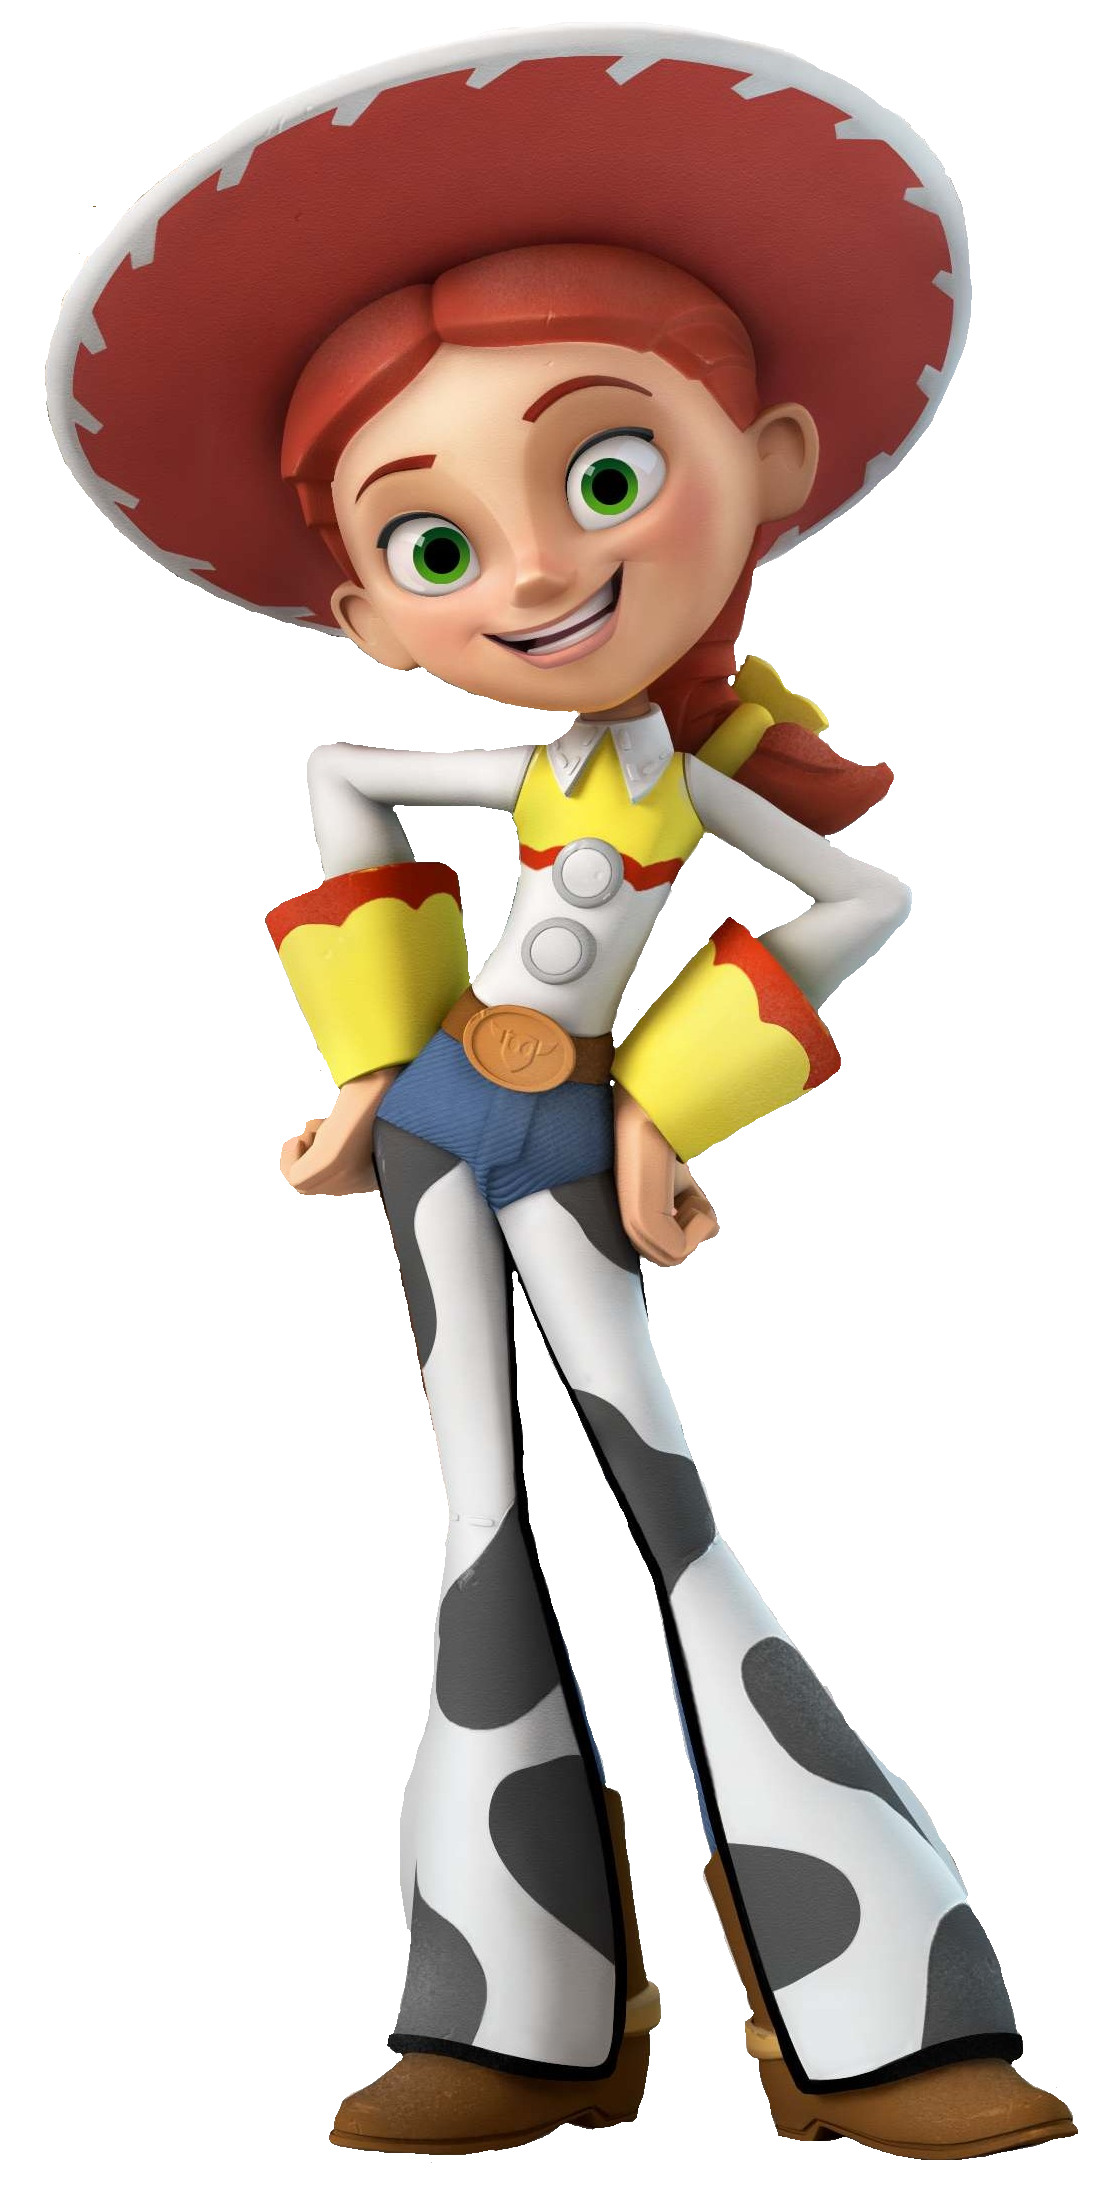 toy story jessie cowboy costume png #41191